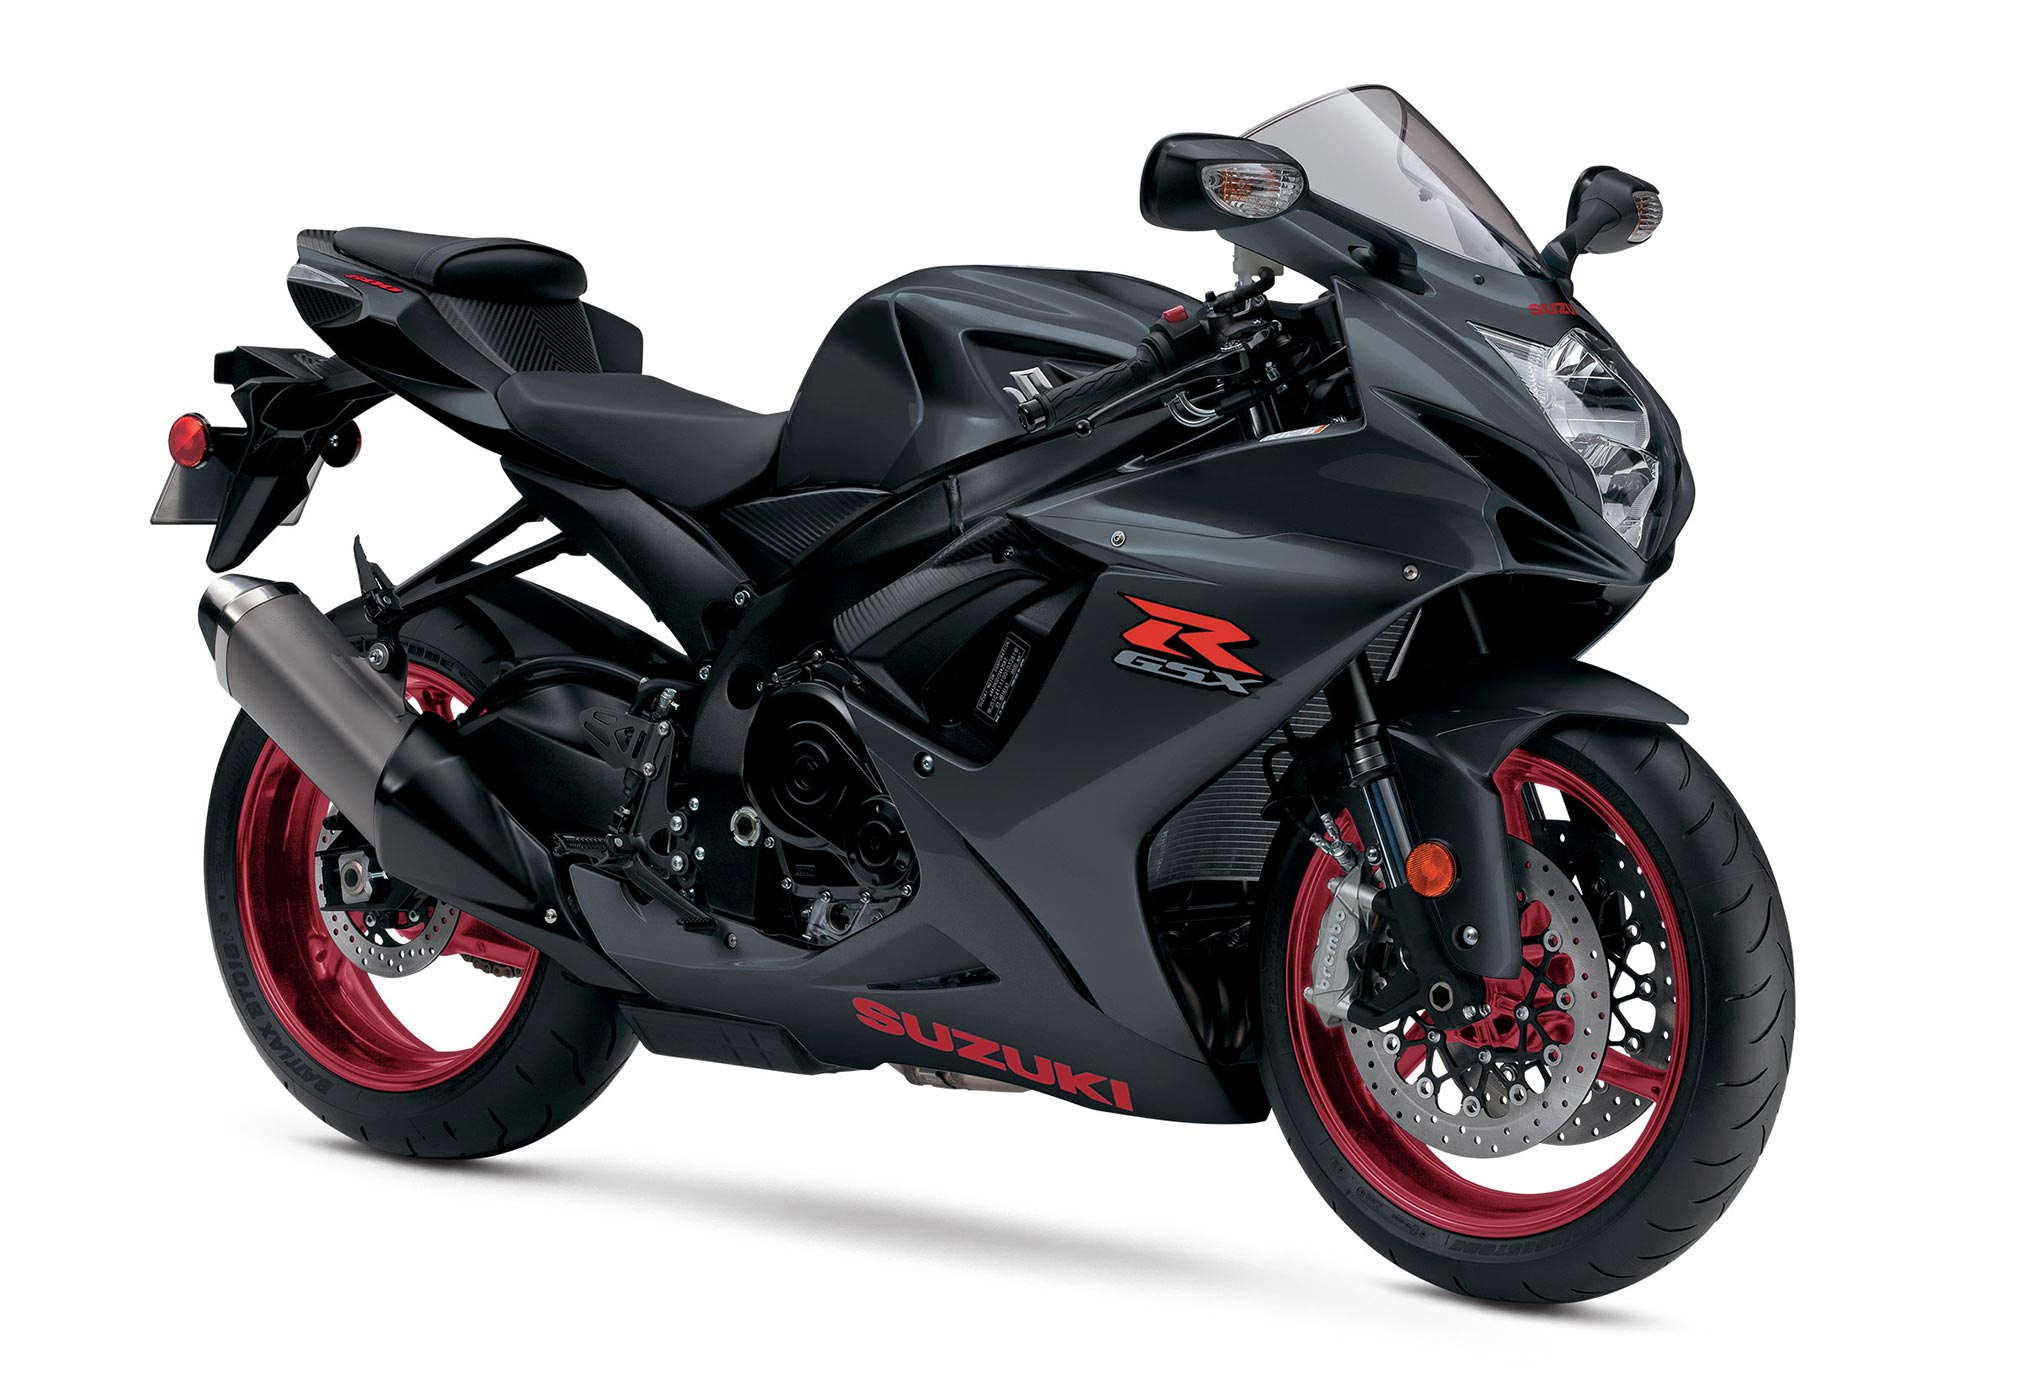 Miraculous 2017 Suzuki Gsx R600 Review Ibusinesslaw Wood Chair Design Ideas Ibusinesslaworg